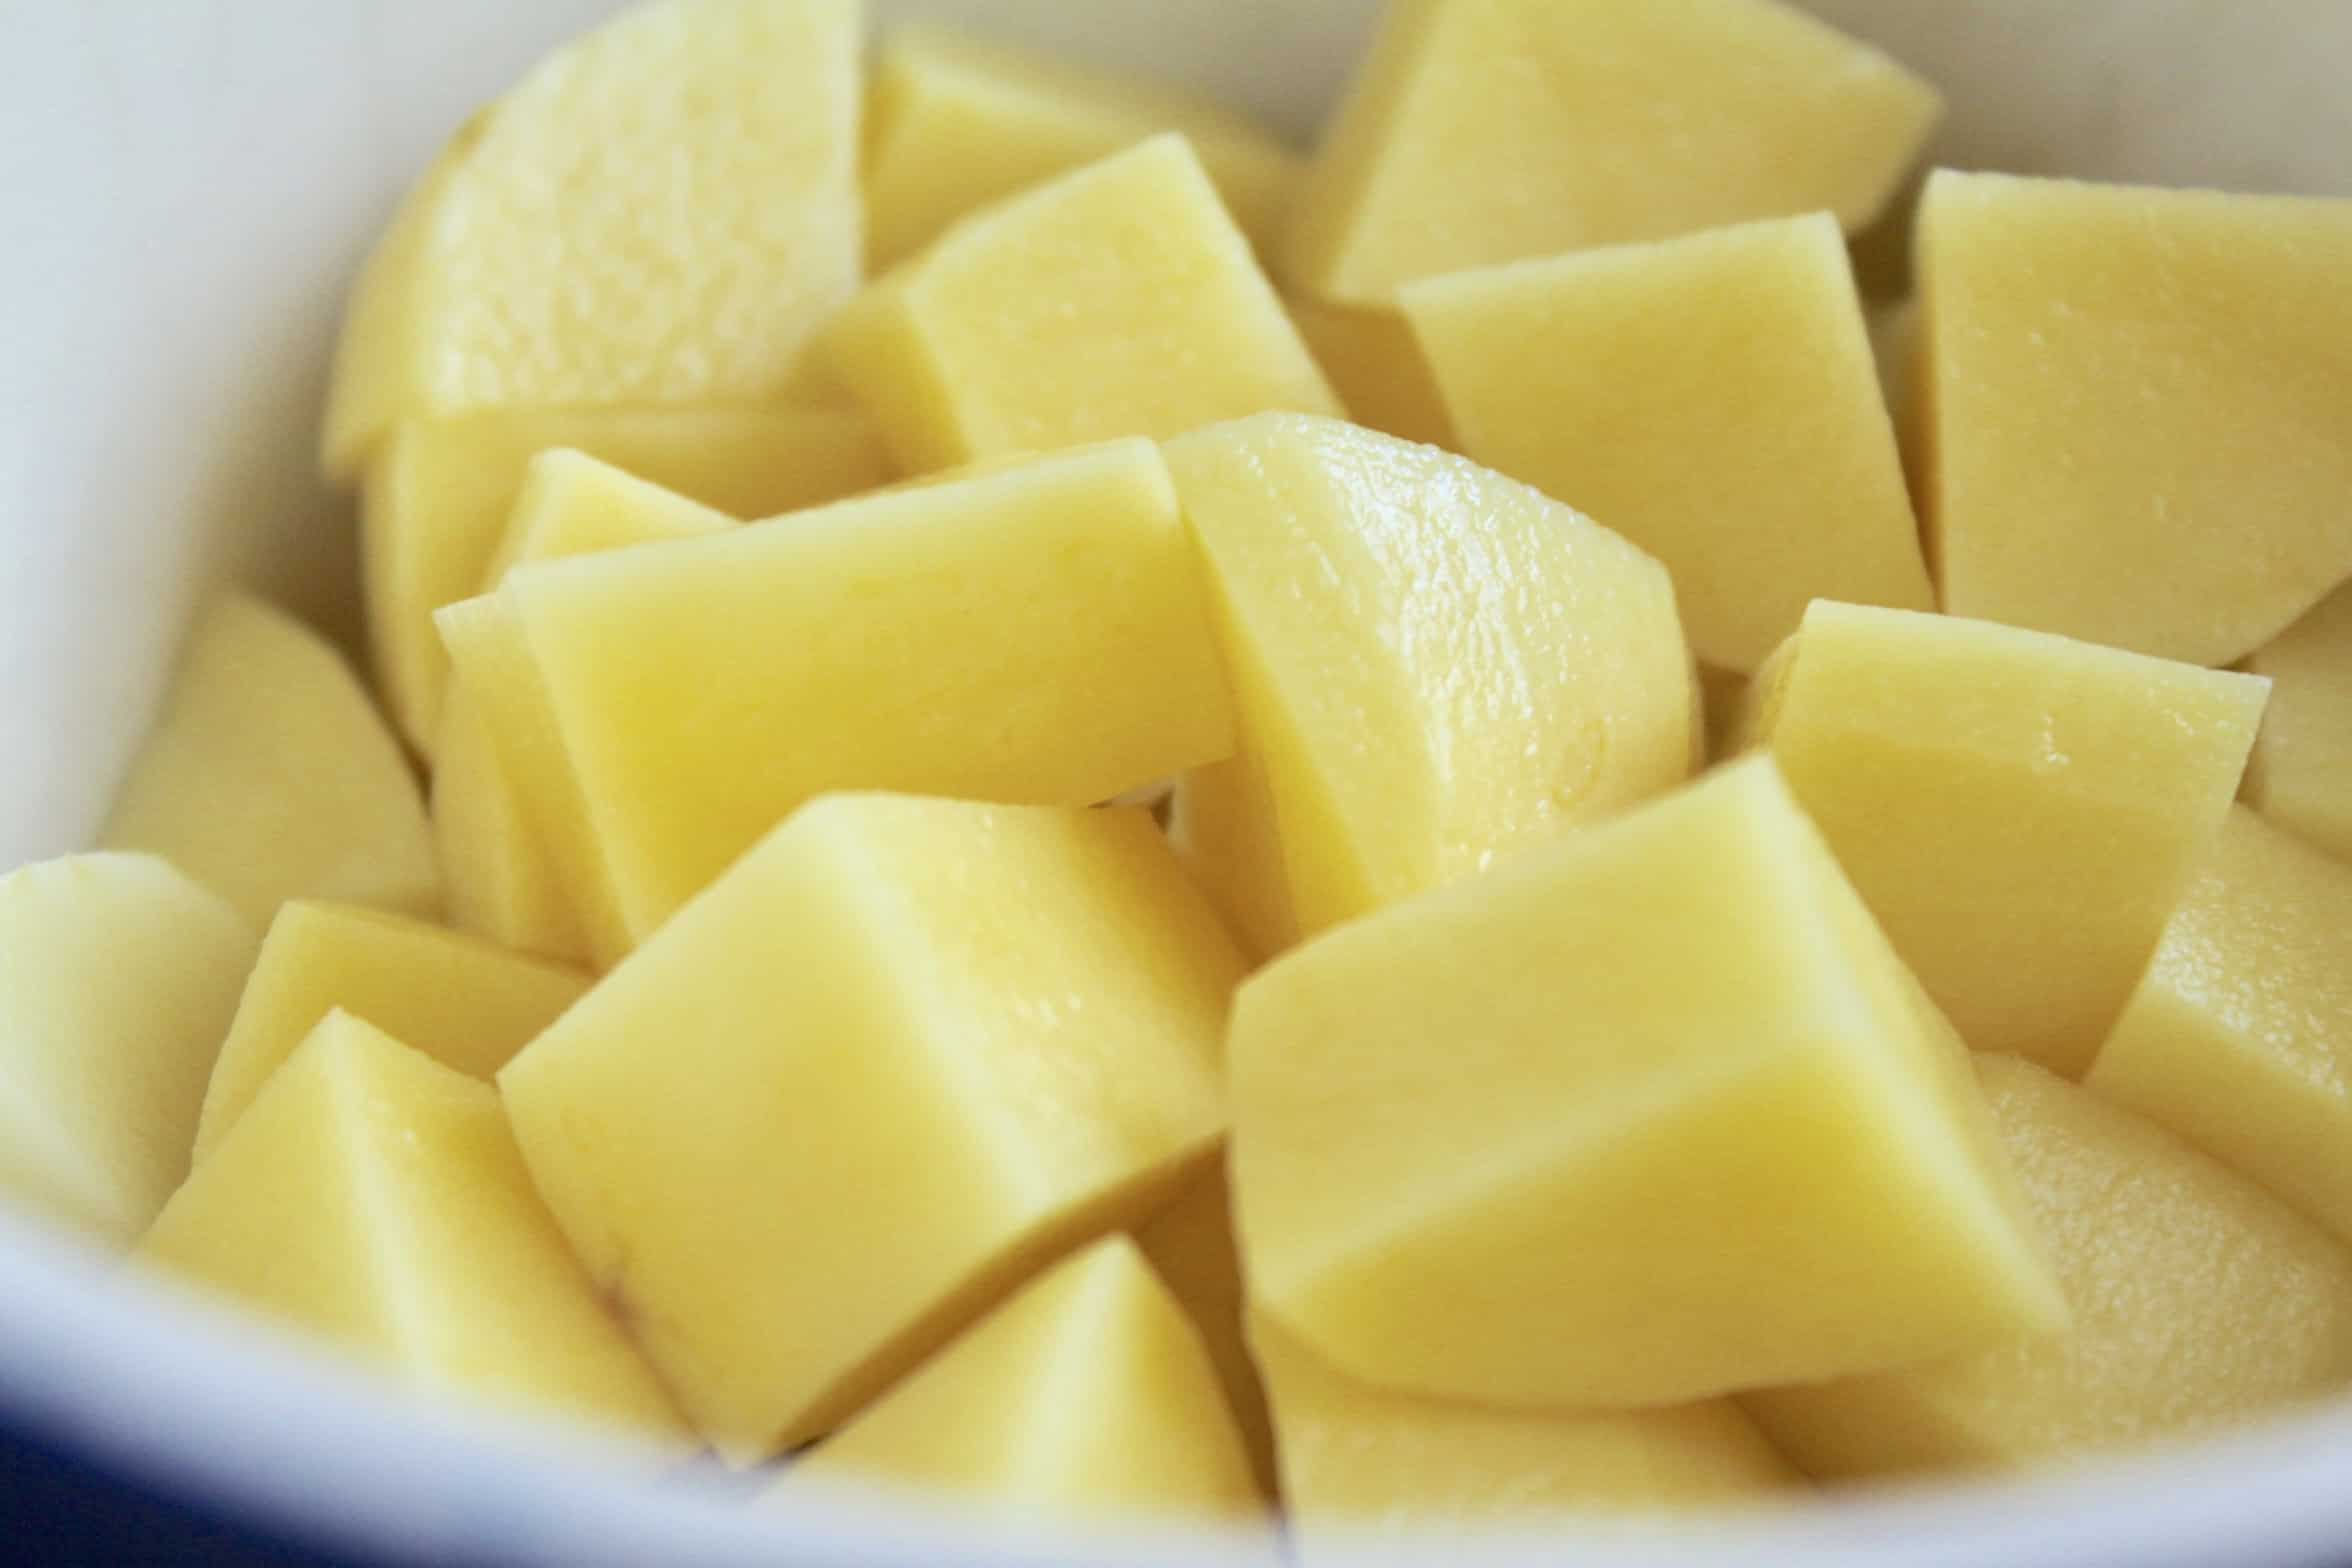 cubed potatoes in a bowl